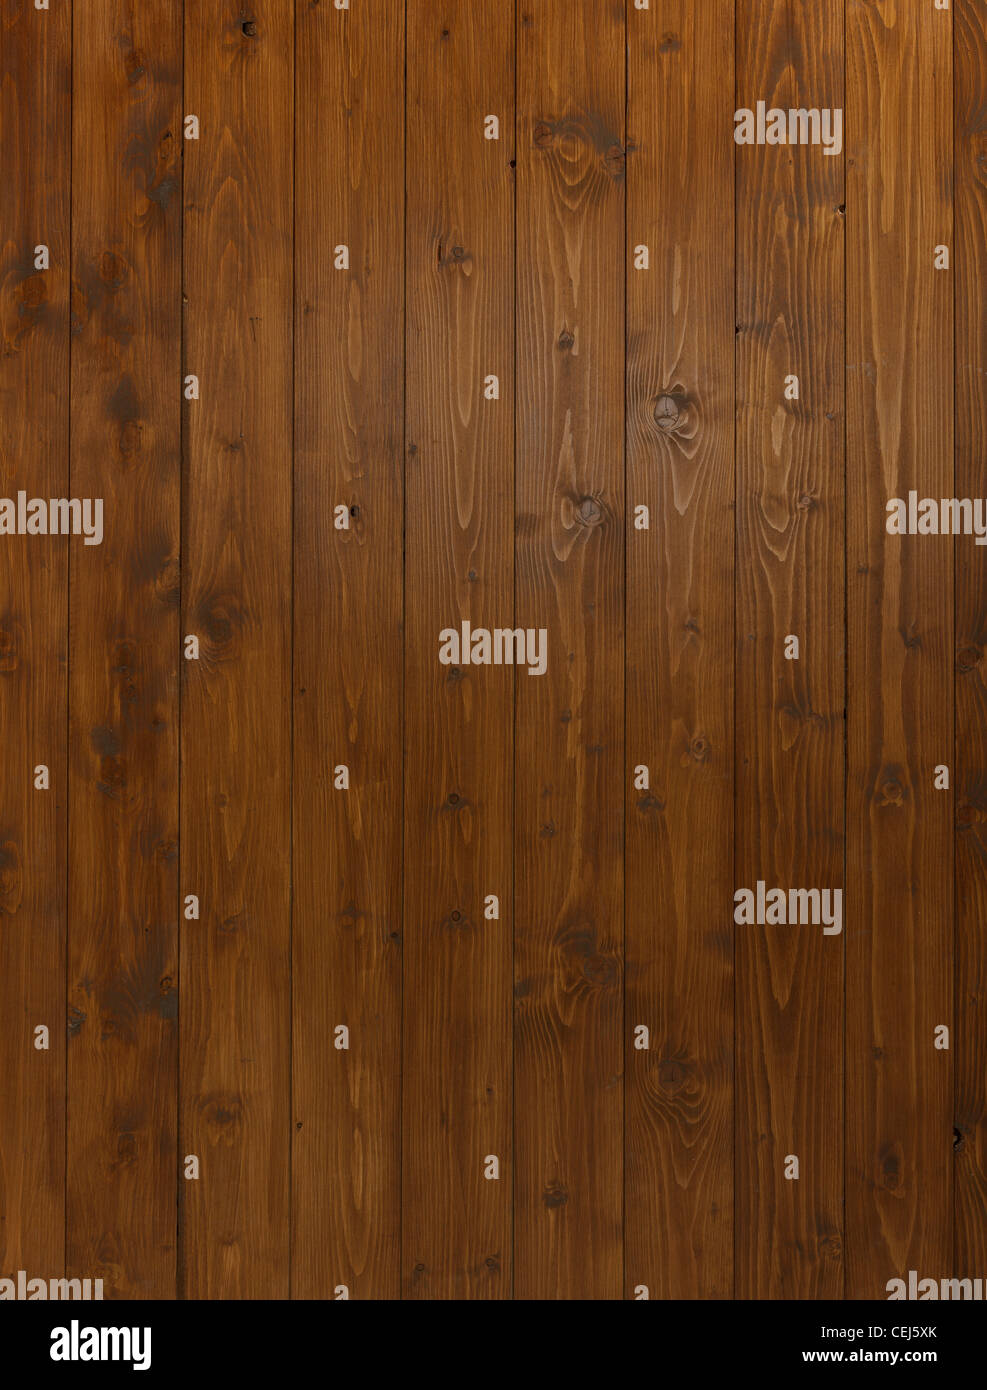 Dark Wood Panel Background With Shaft Of Light Illuminating Middle Section